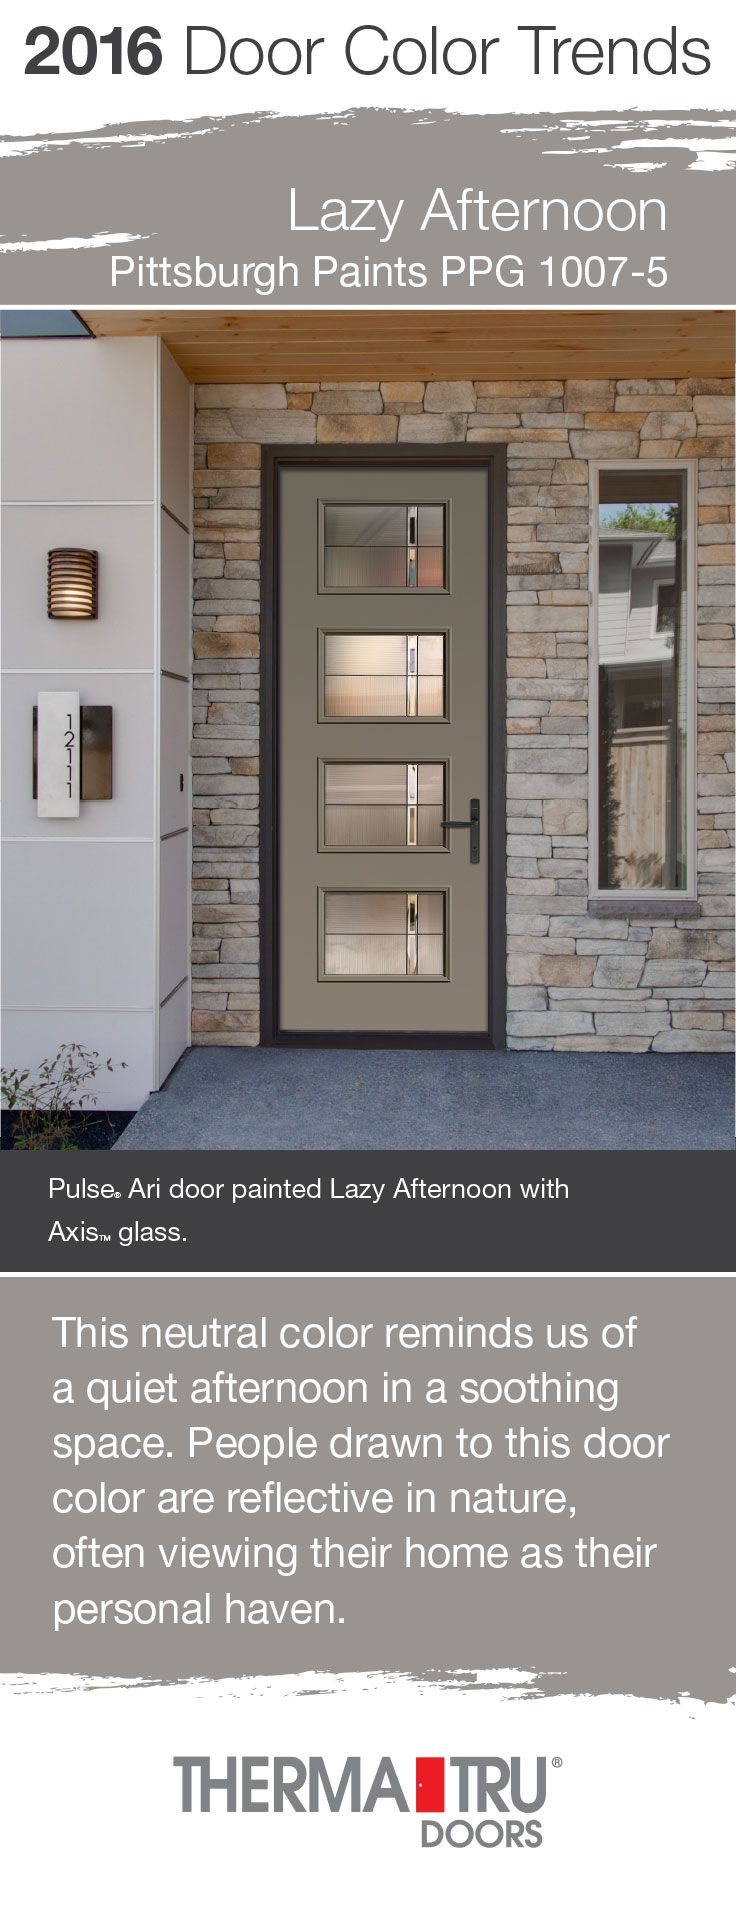 Lazy Afternoon By Pittsburgh Paints One Of The Front Door Color Trends For 2016